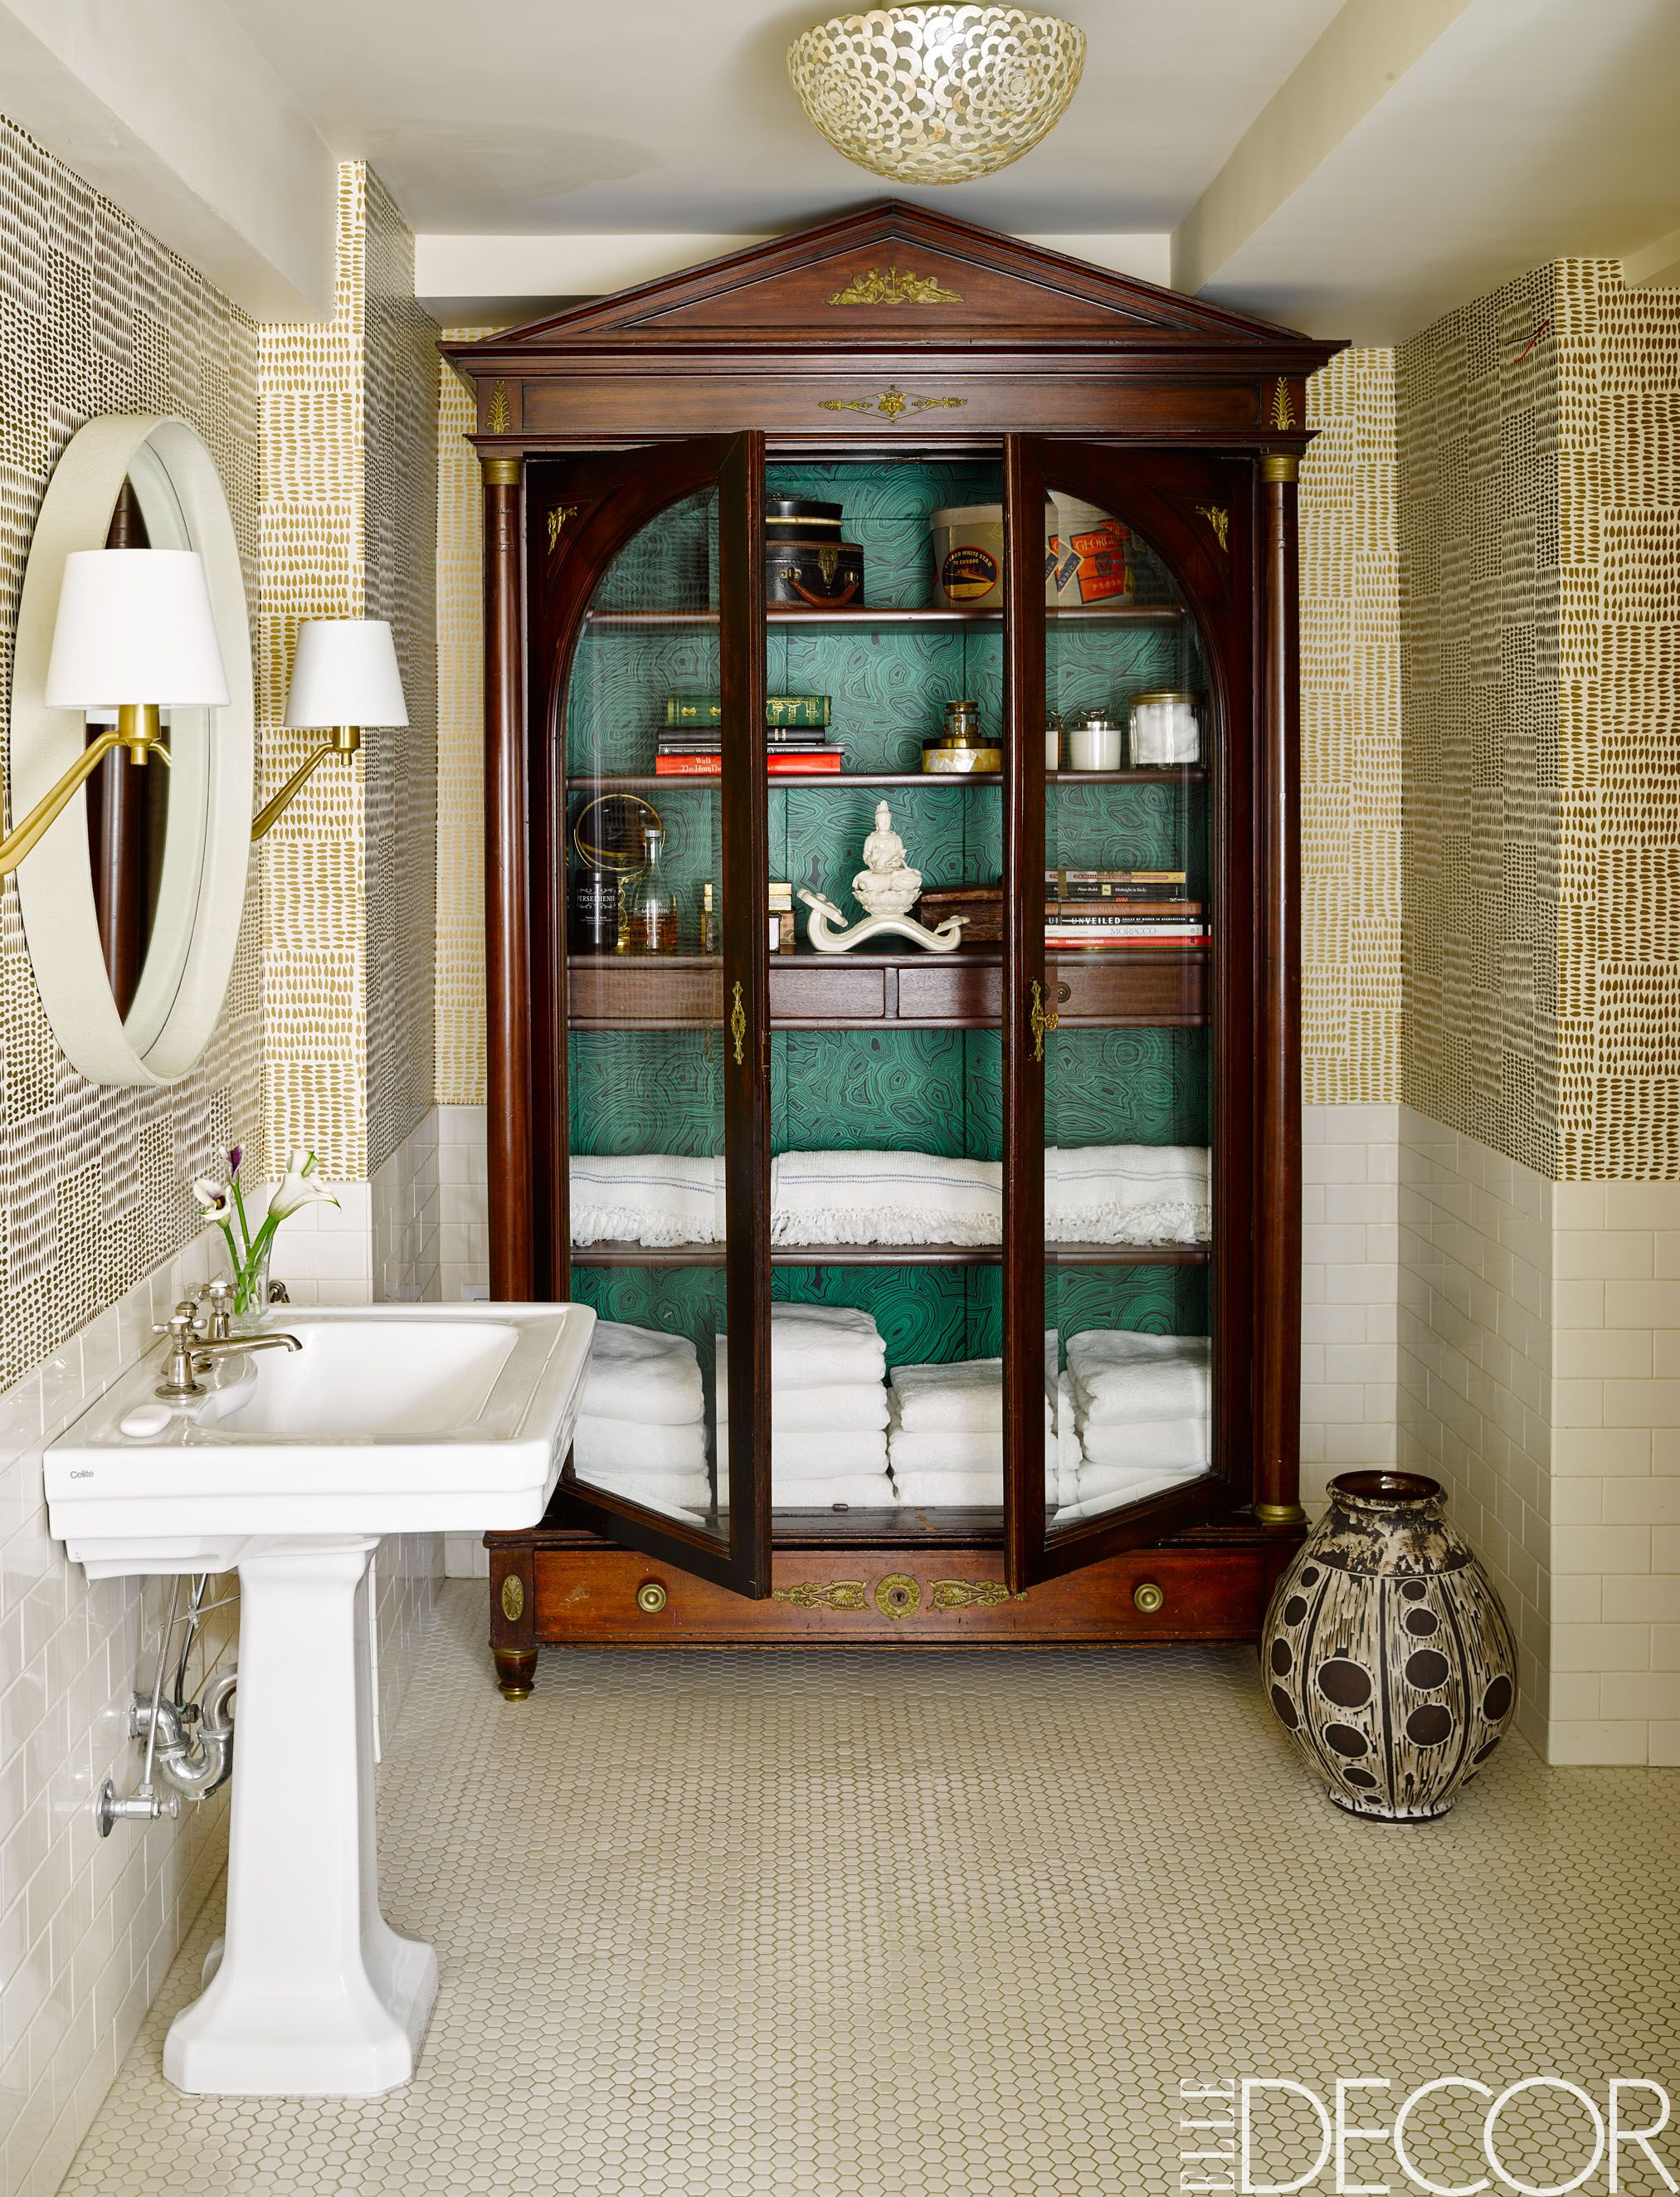 These Small Bathroom Ideas Are Big on Style